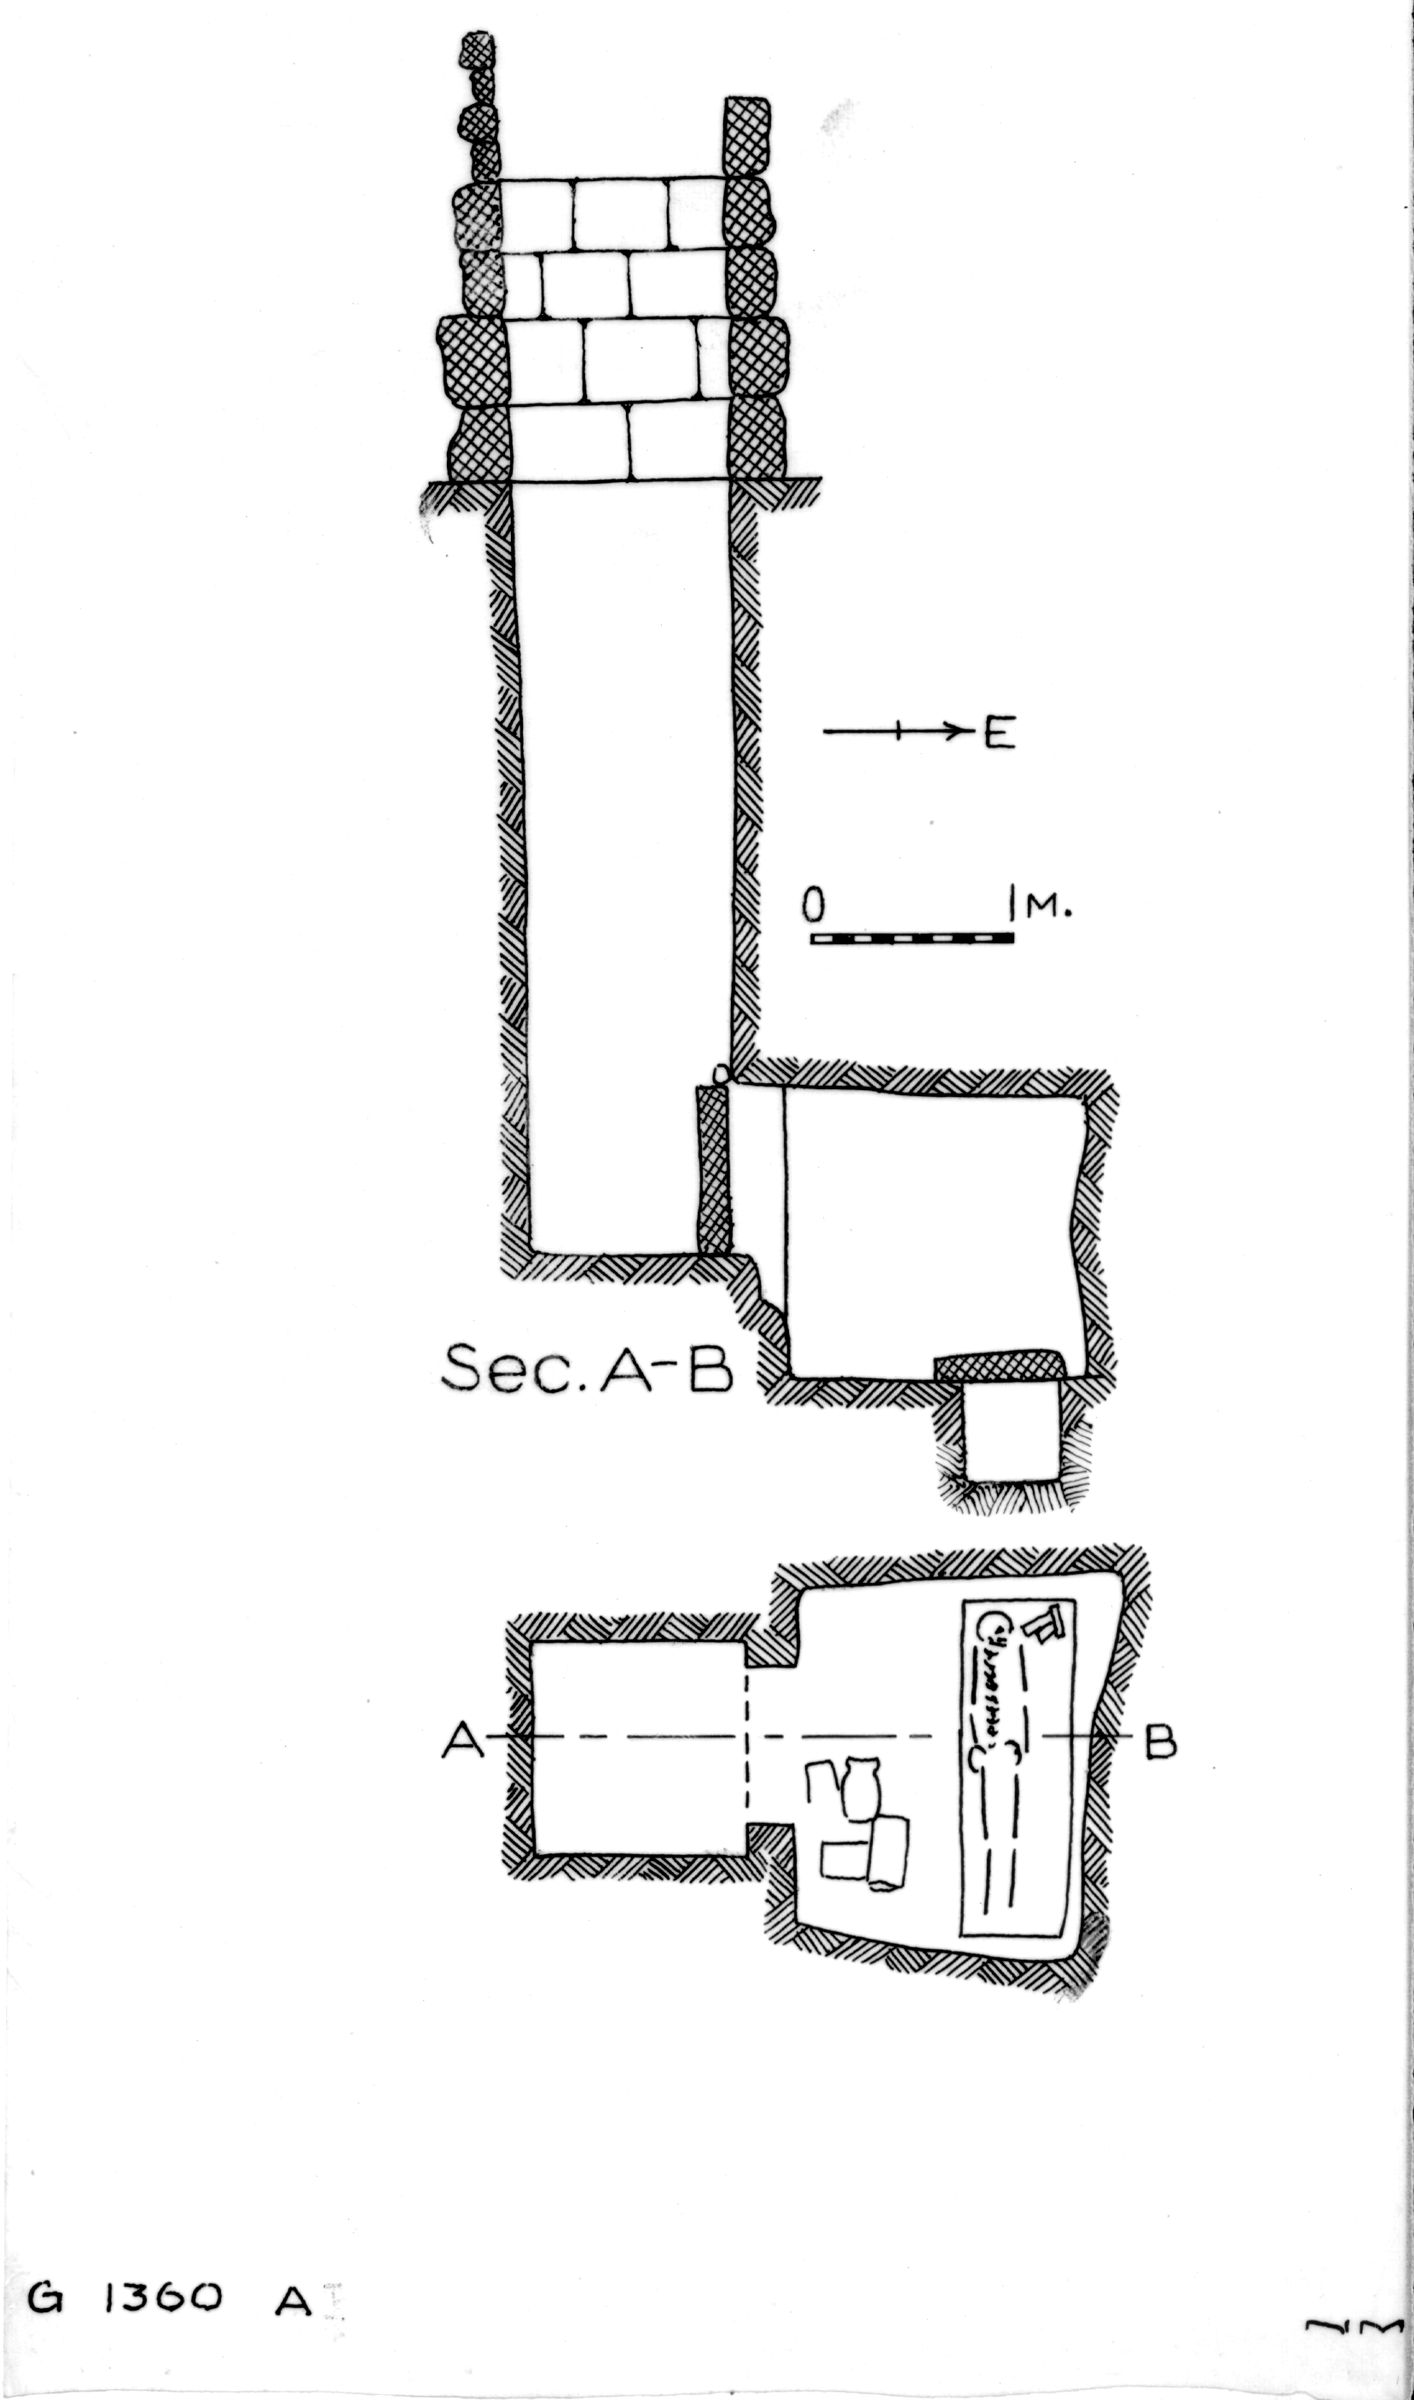 Maps and plans: G 1360, Shaft A